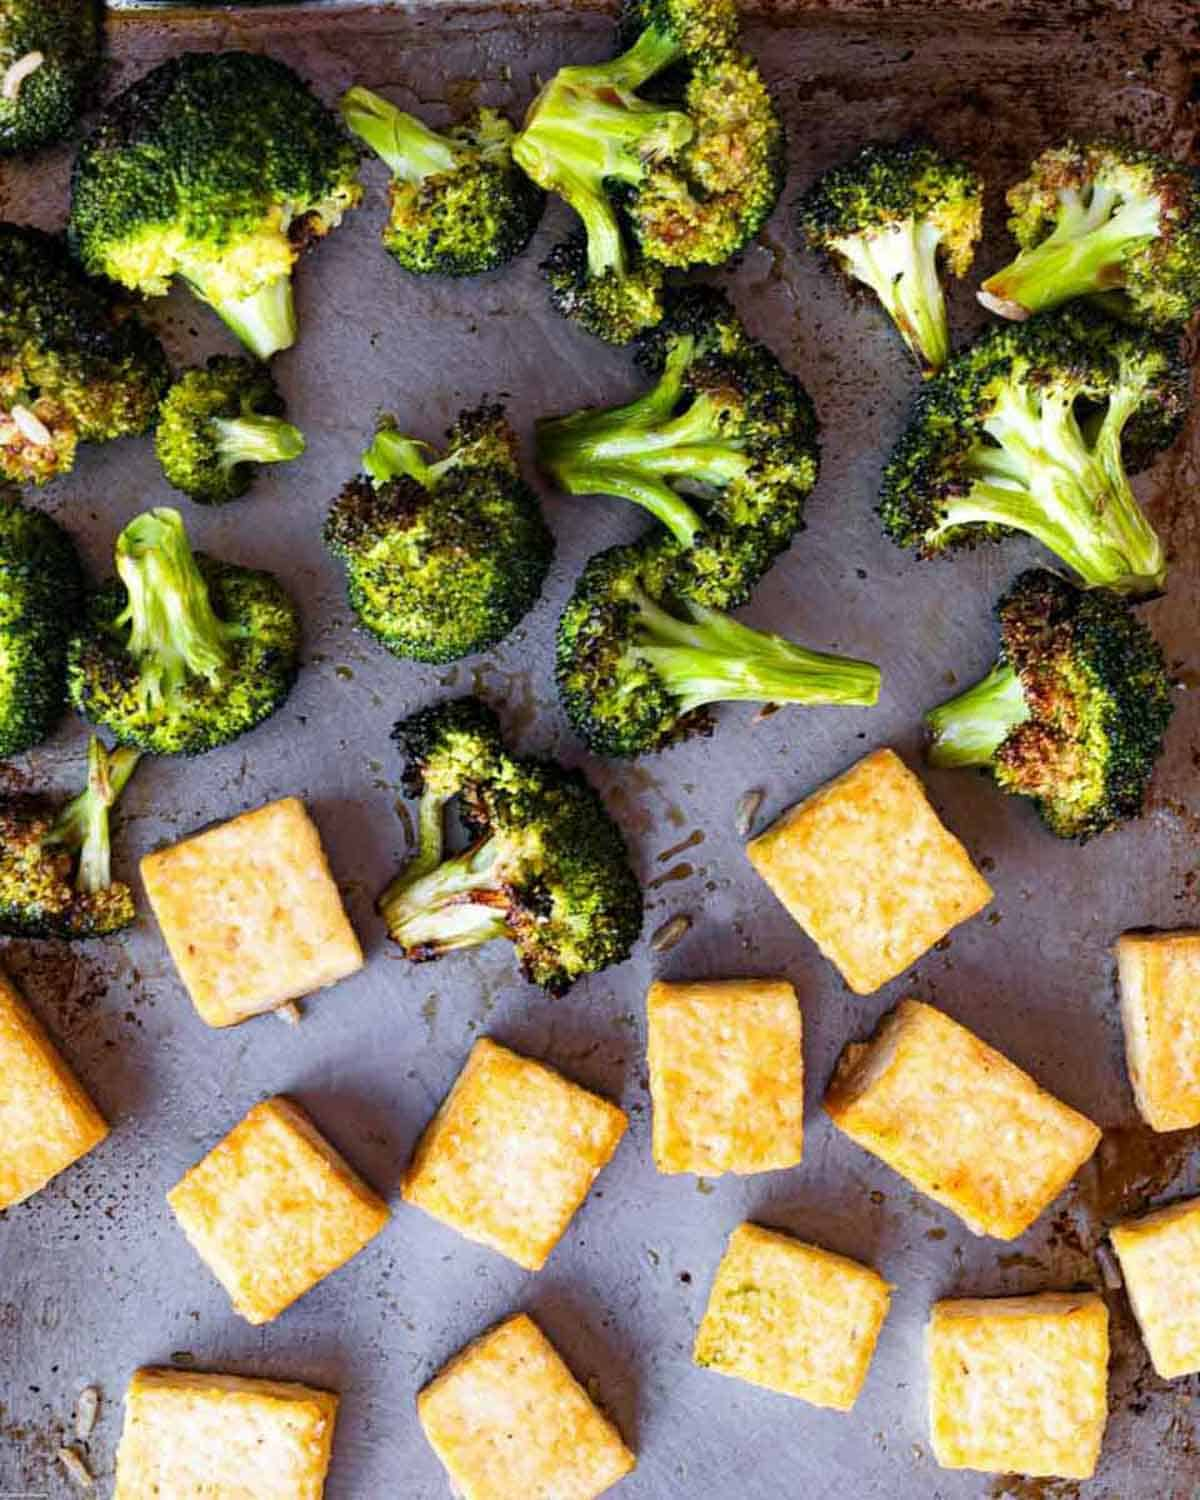 A large baking sheet with roasted charred broccoli and golden brown tofu cubes.